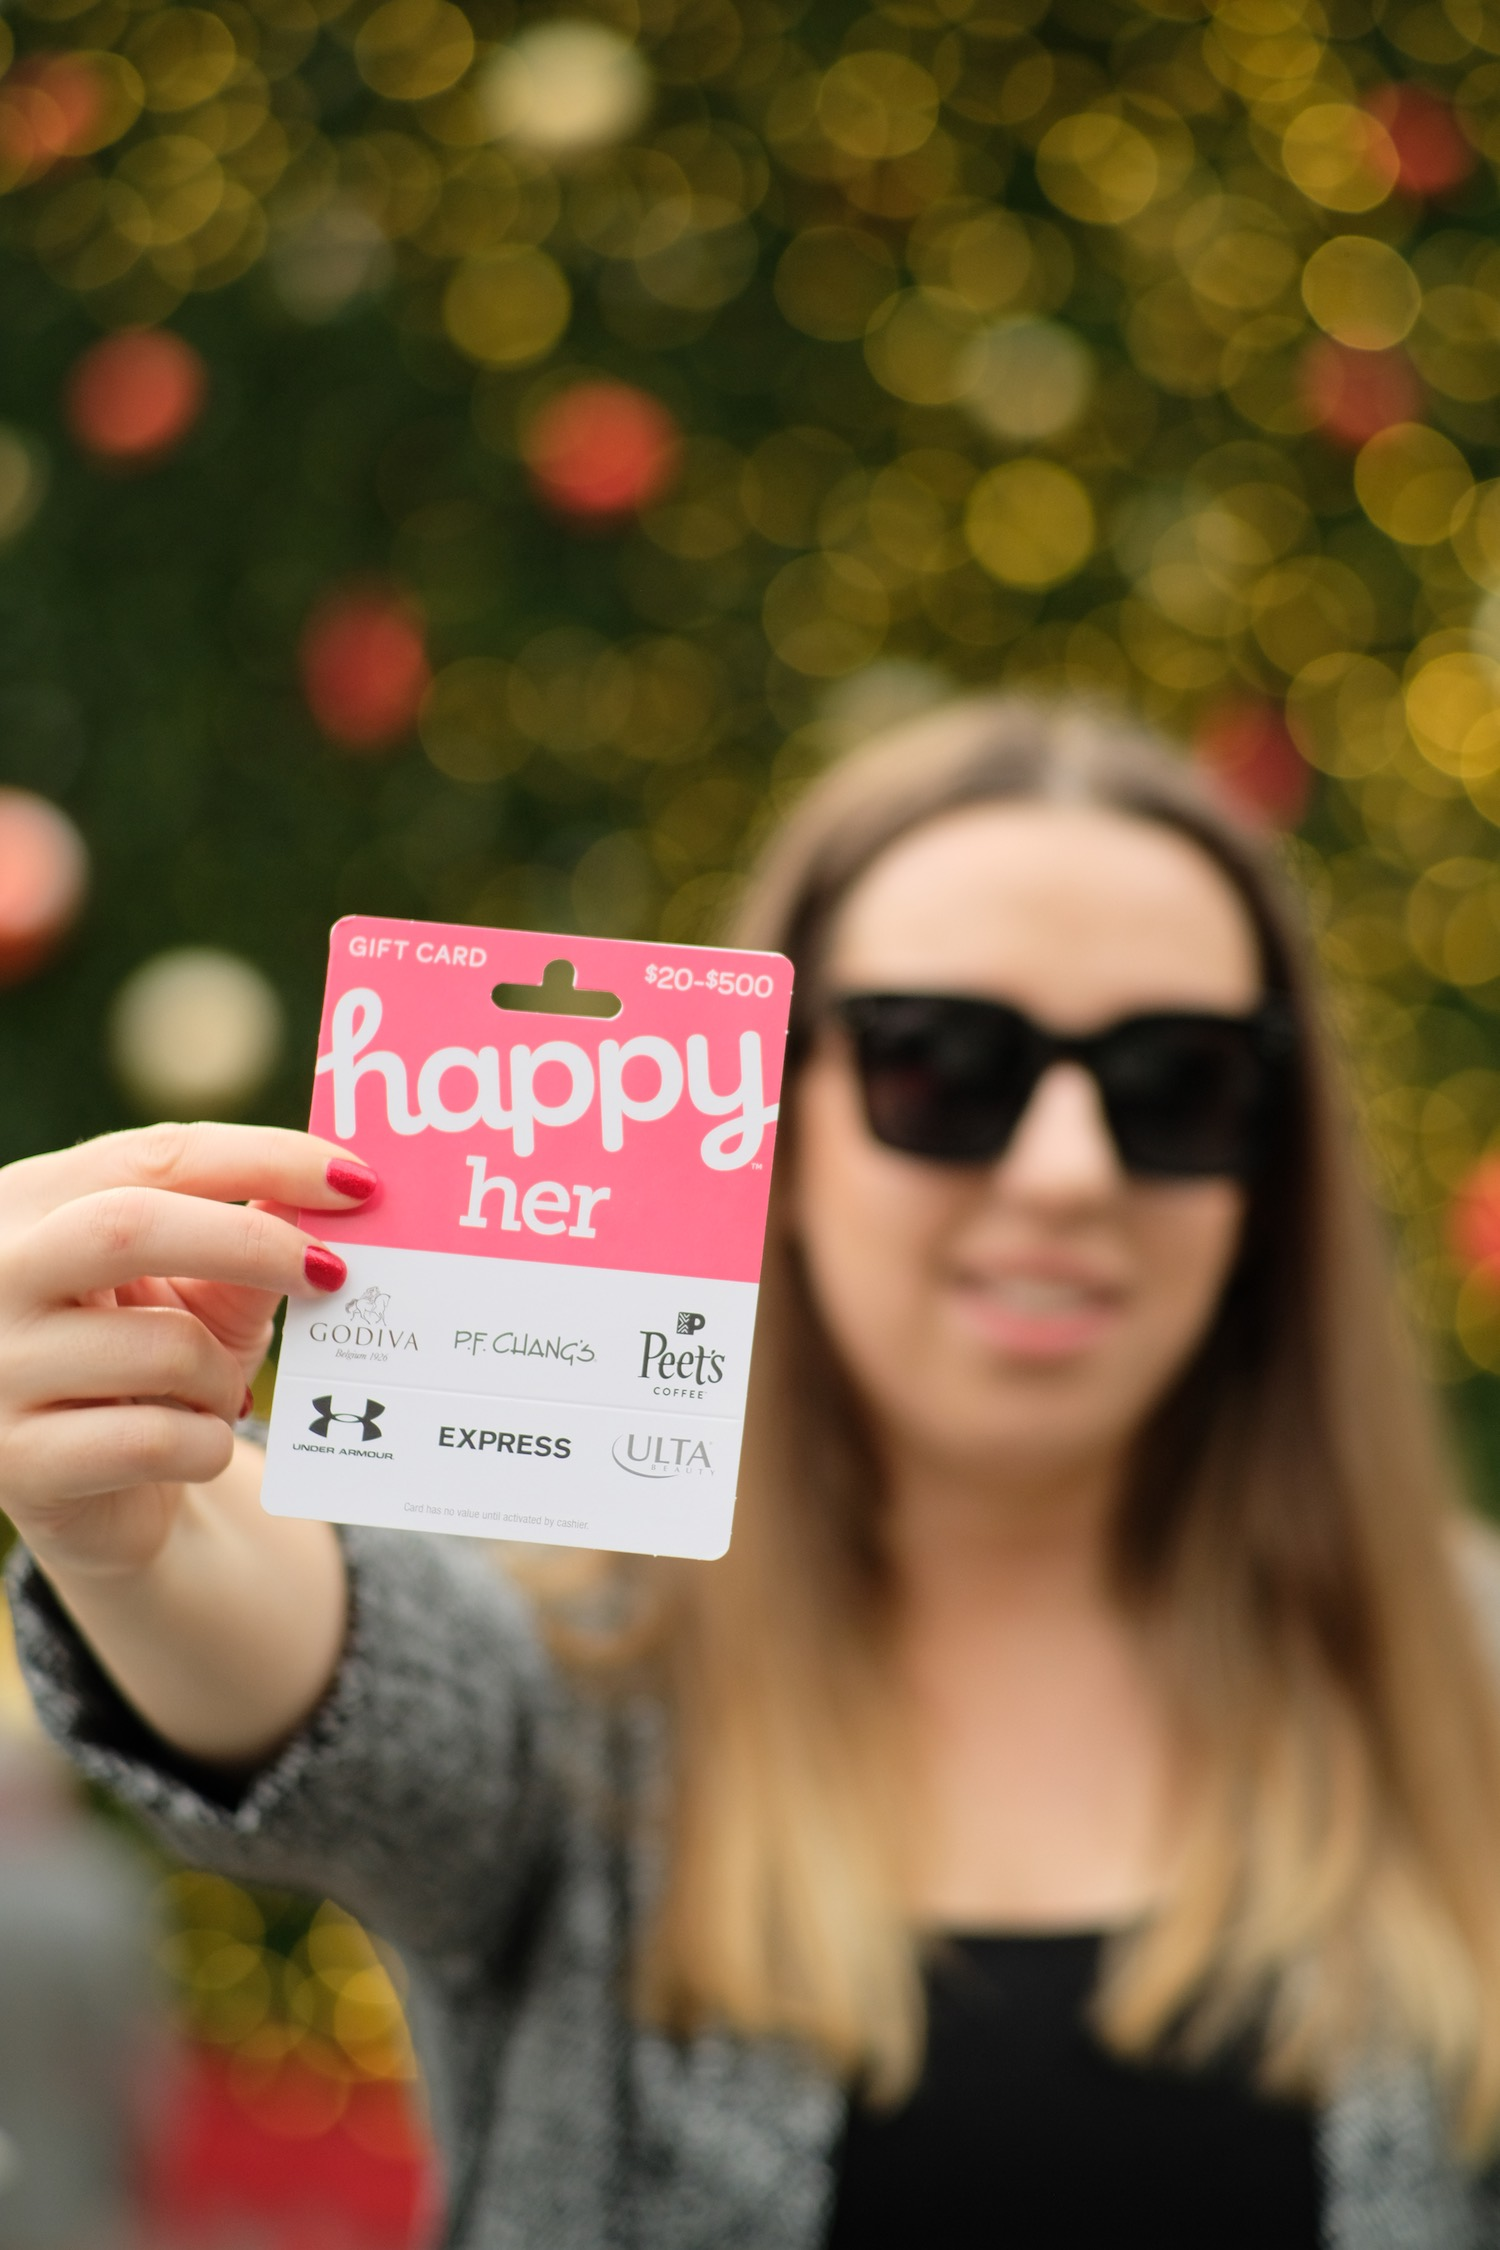 Happy Cards Gift Card Last Minute Gift Ideas